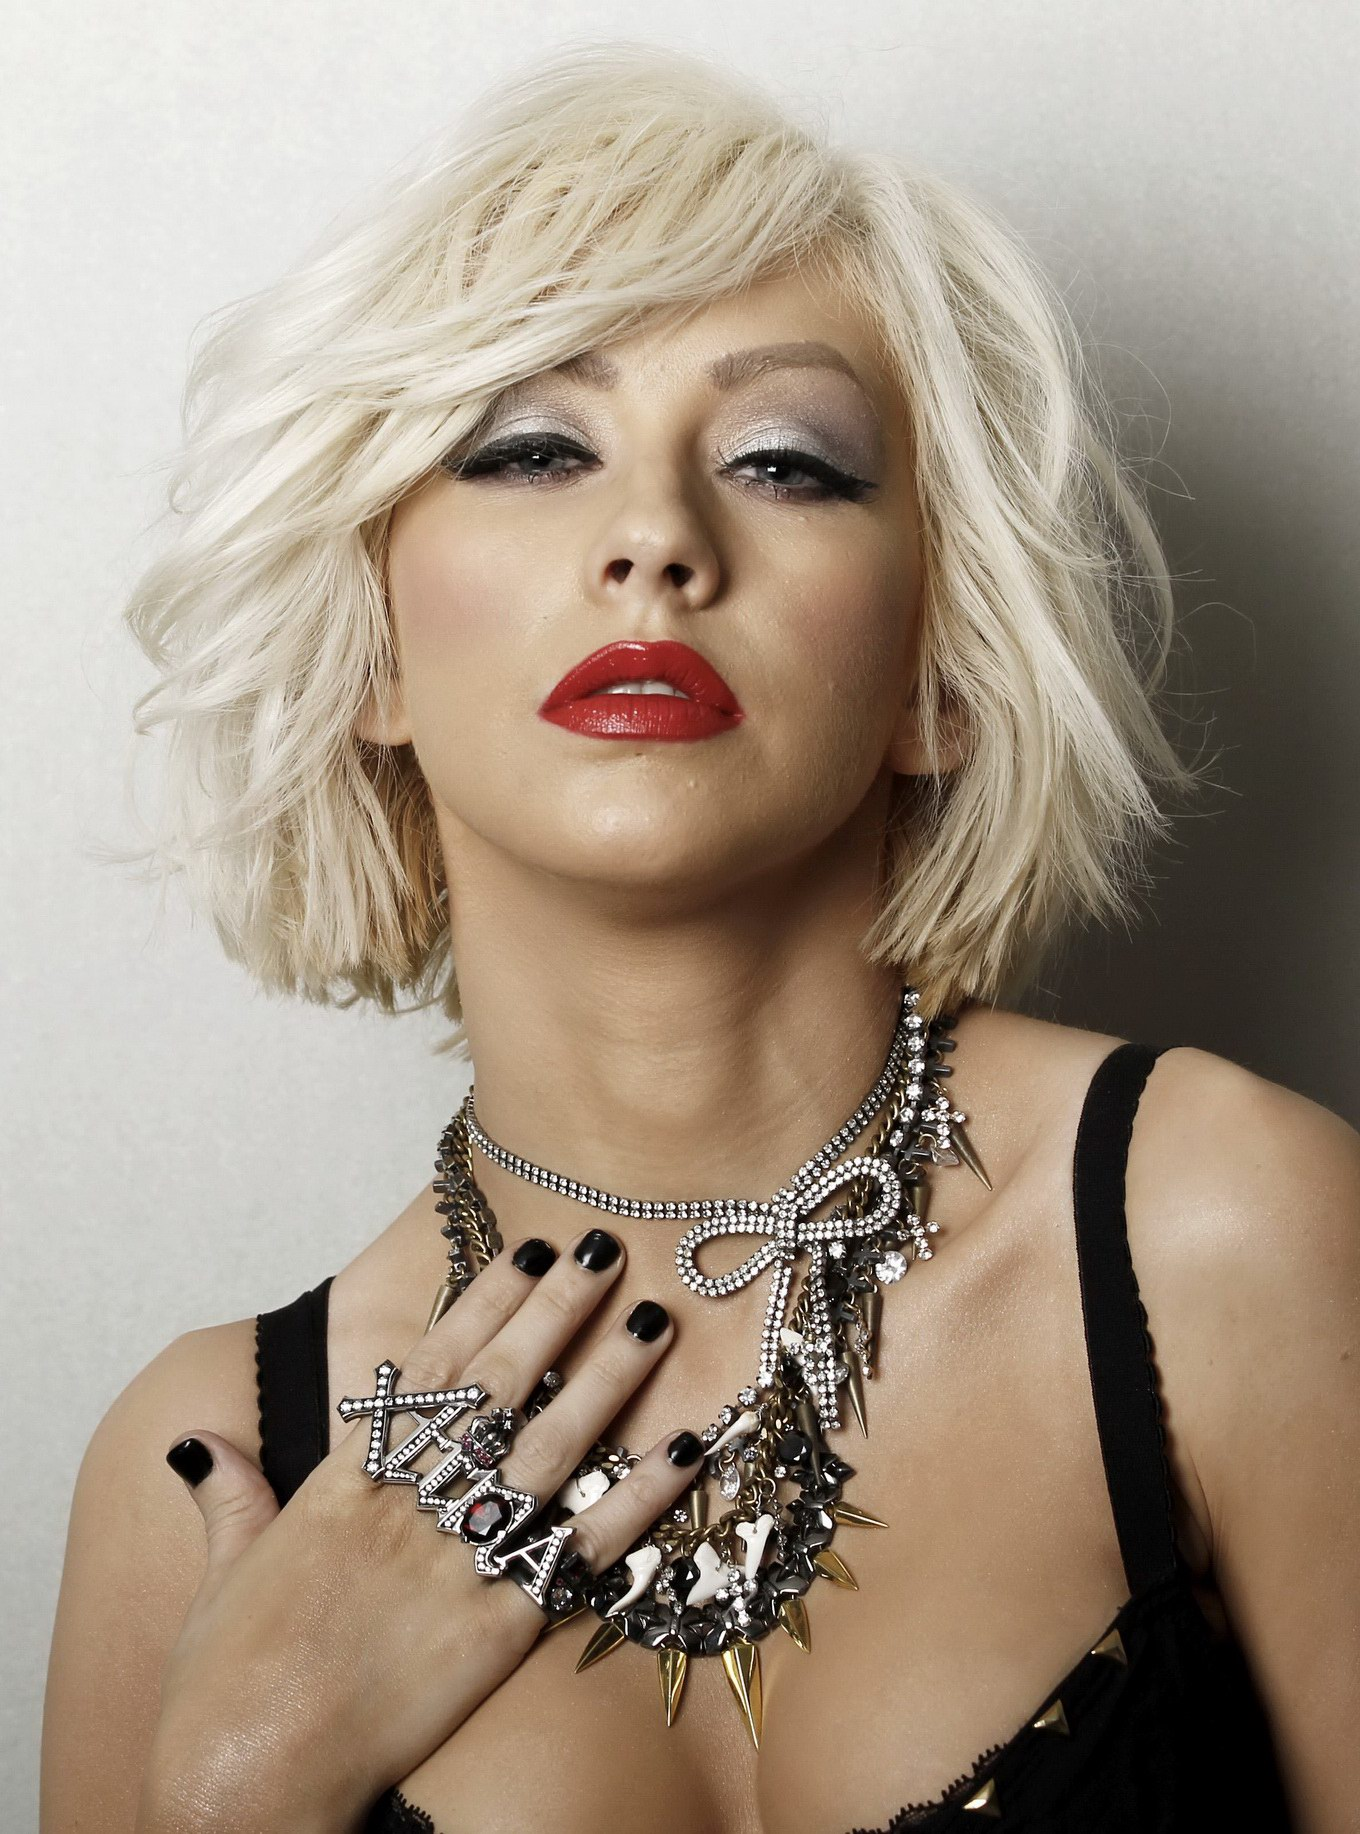 Christina Aguilera busty in black top for M. S. Portraits ... Christina